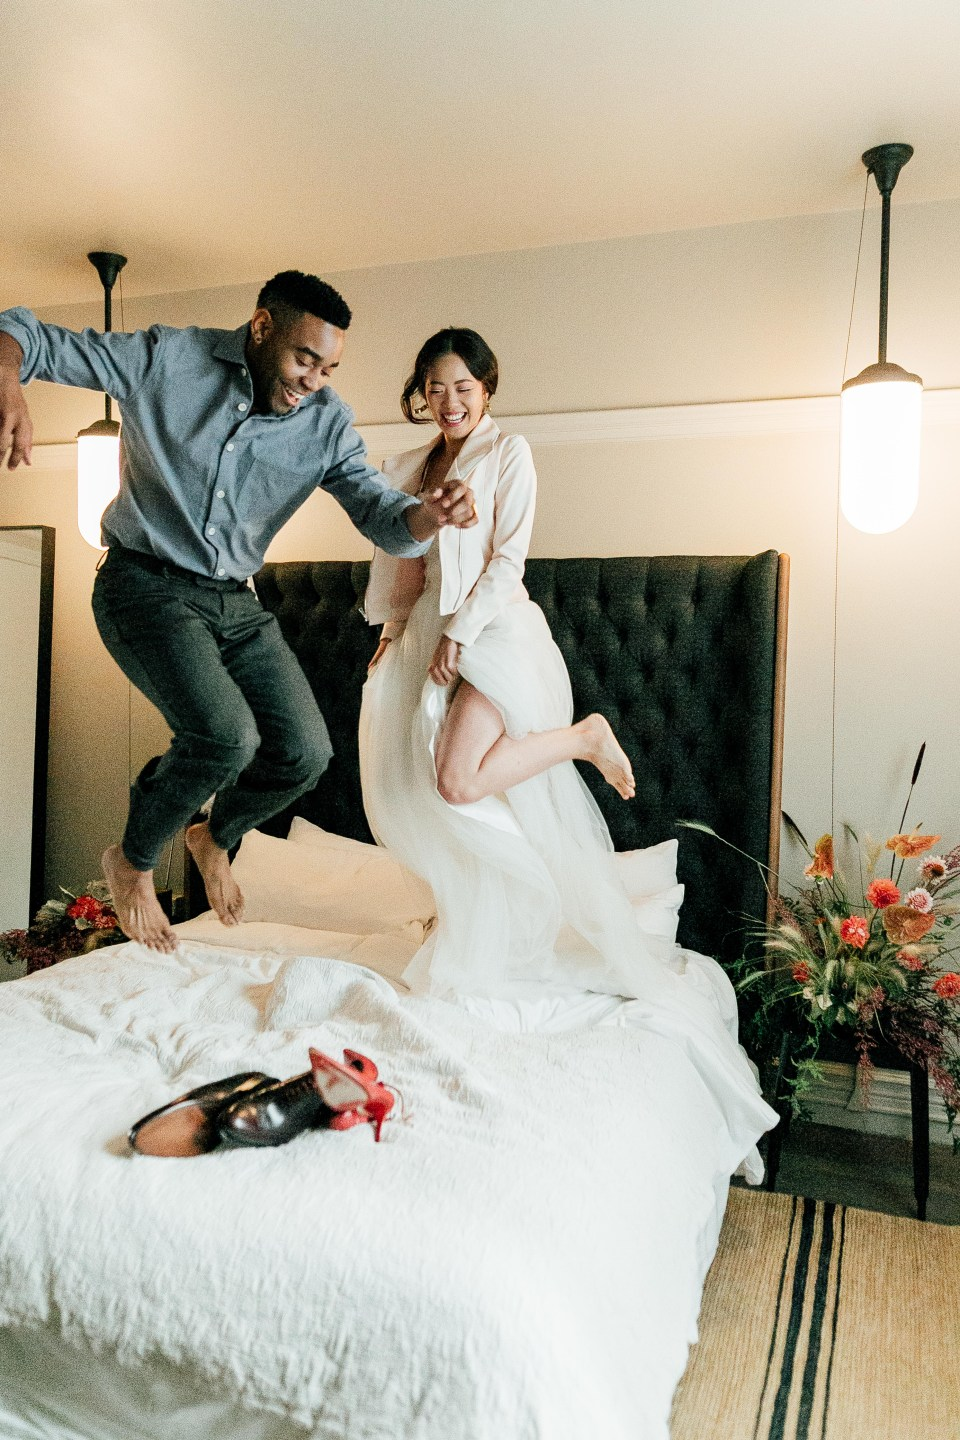 ethically dressed man and woman jump on hotel bed